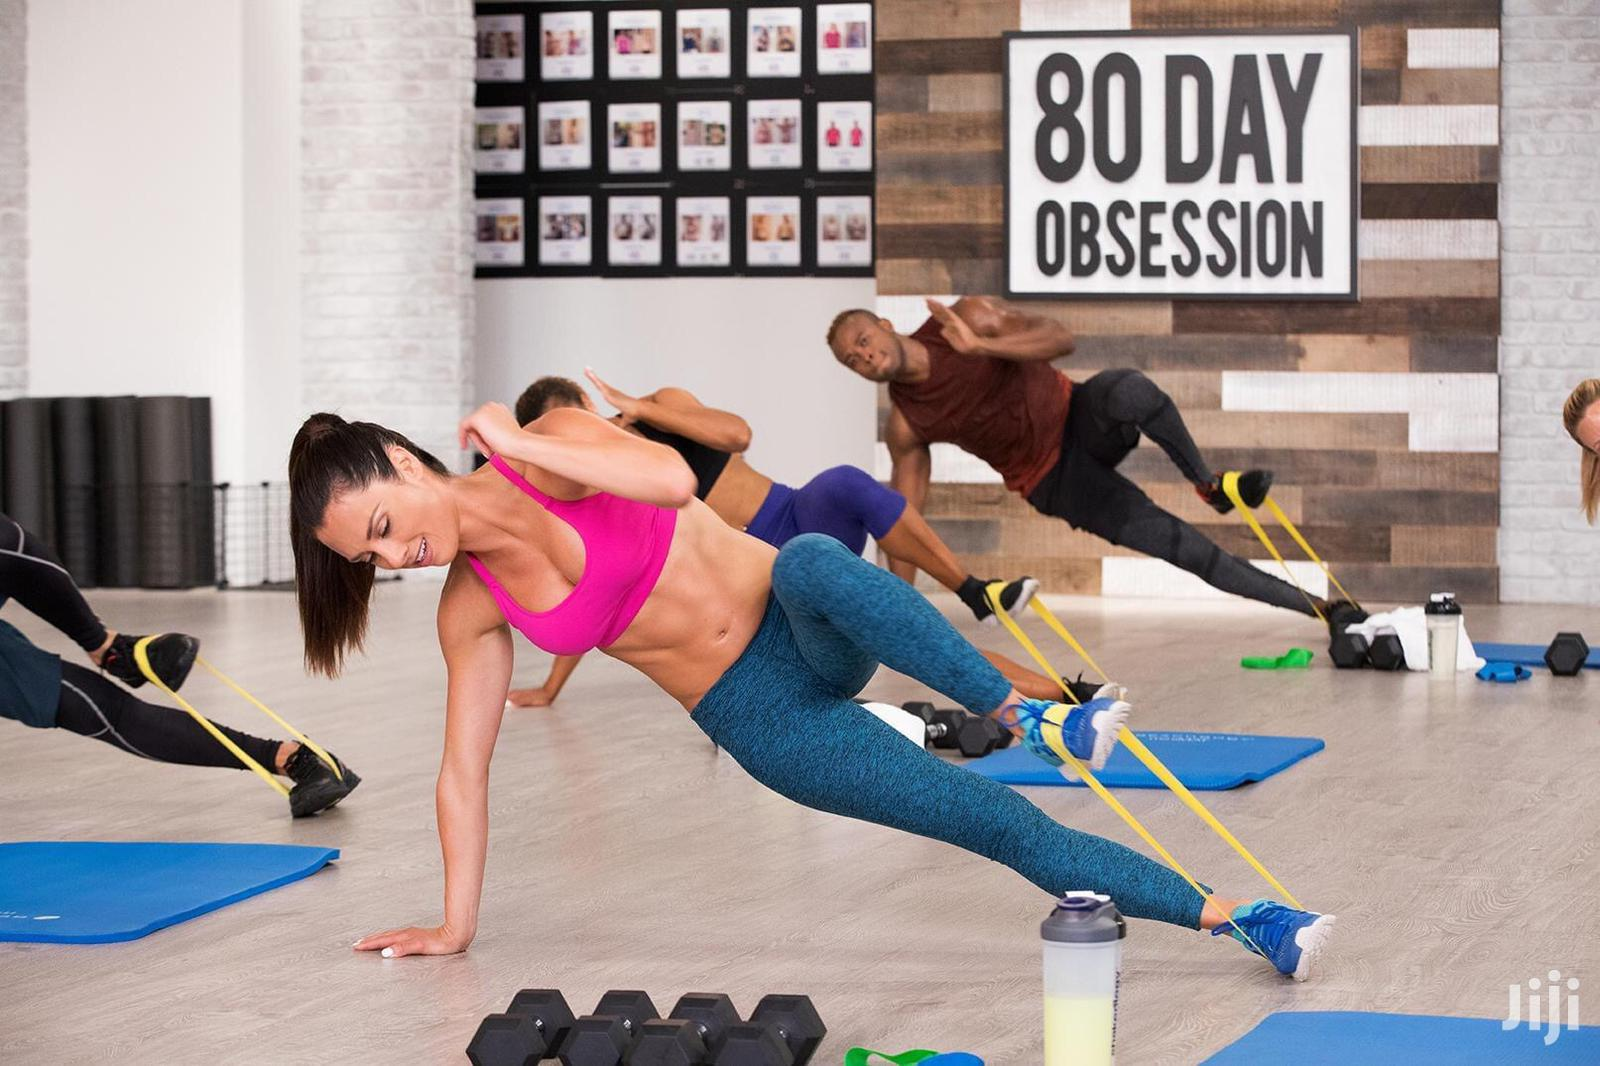 80 Day Obsession Workout (Watch Your Body Change In 80 Days)